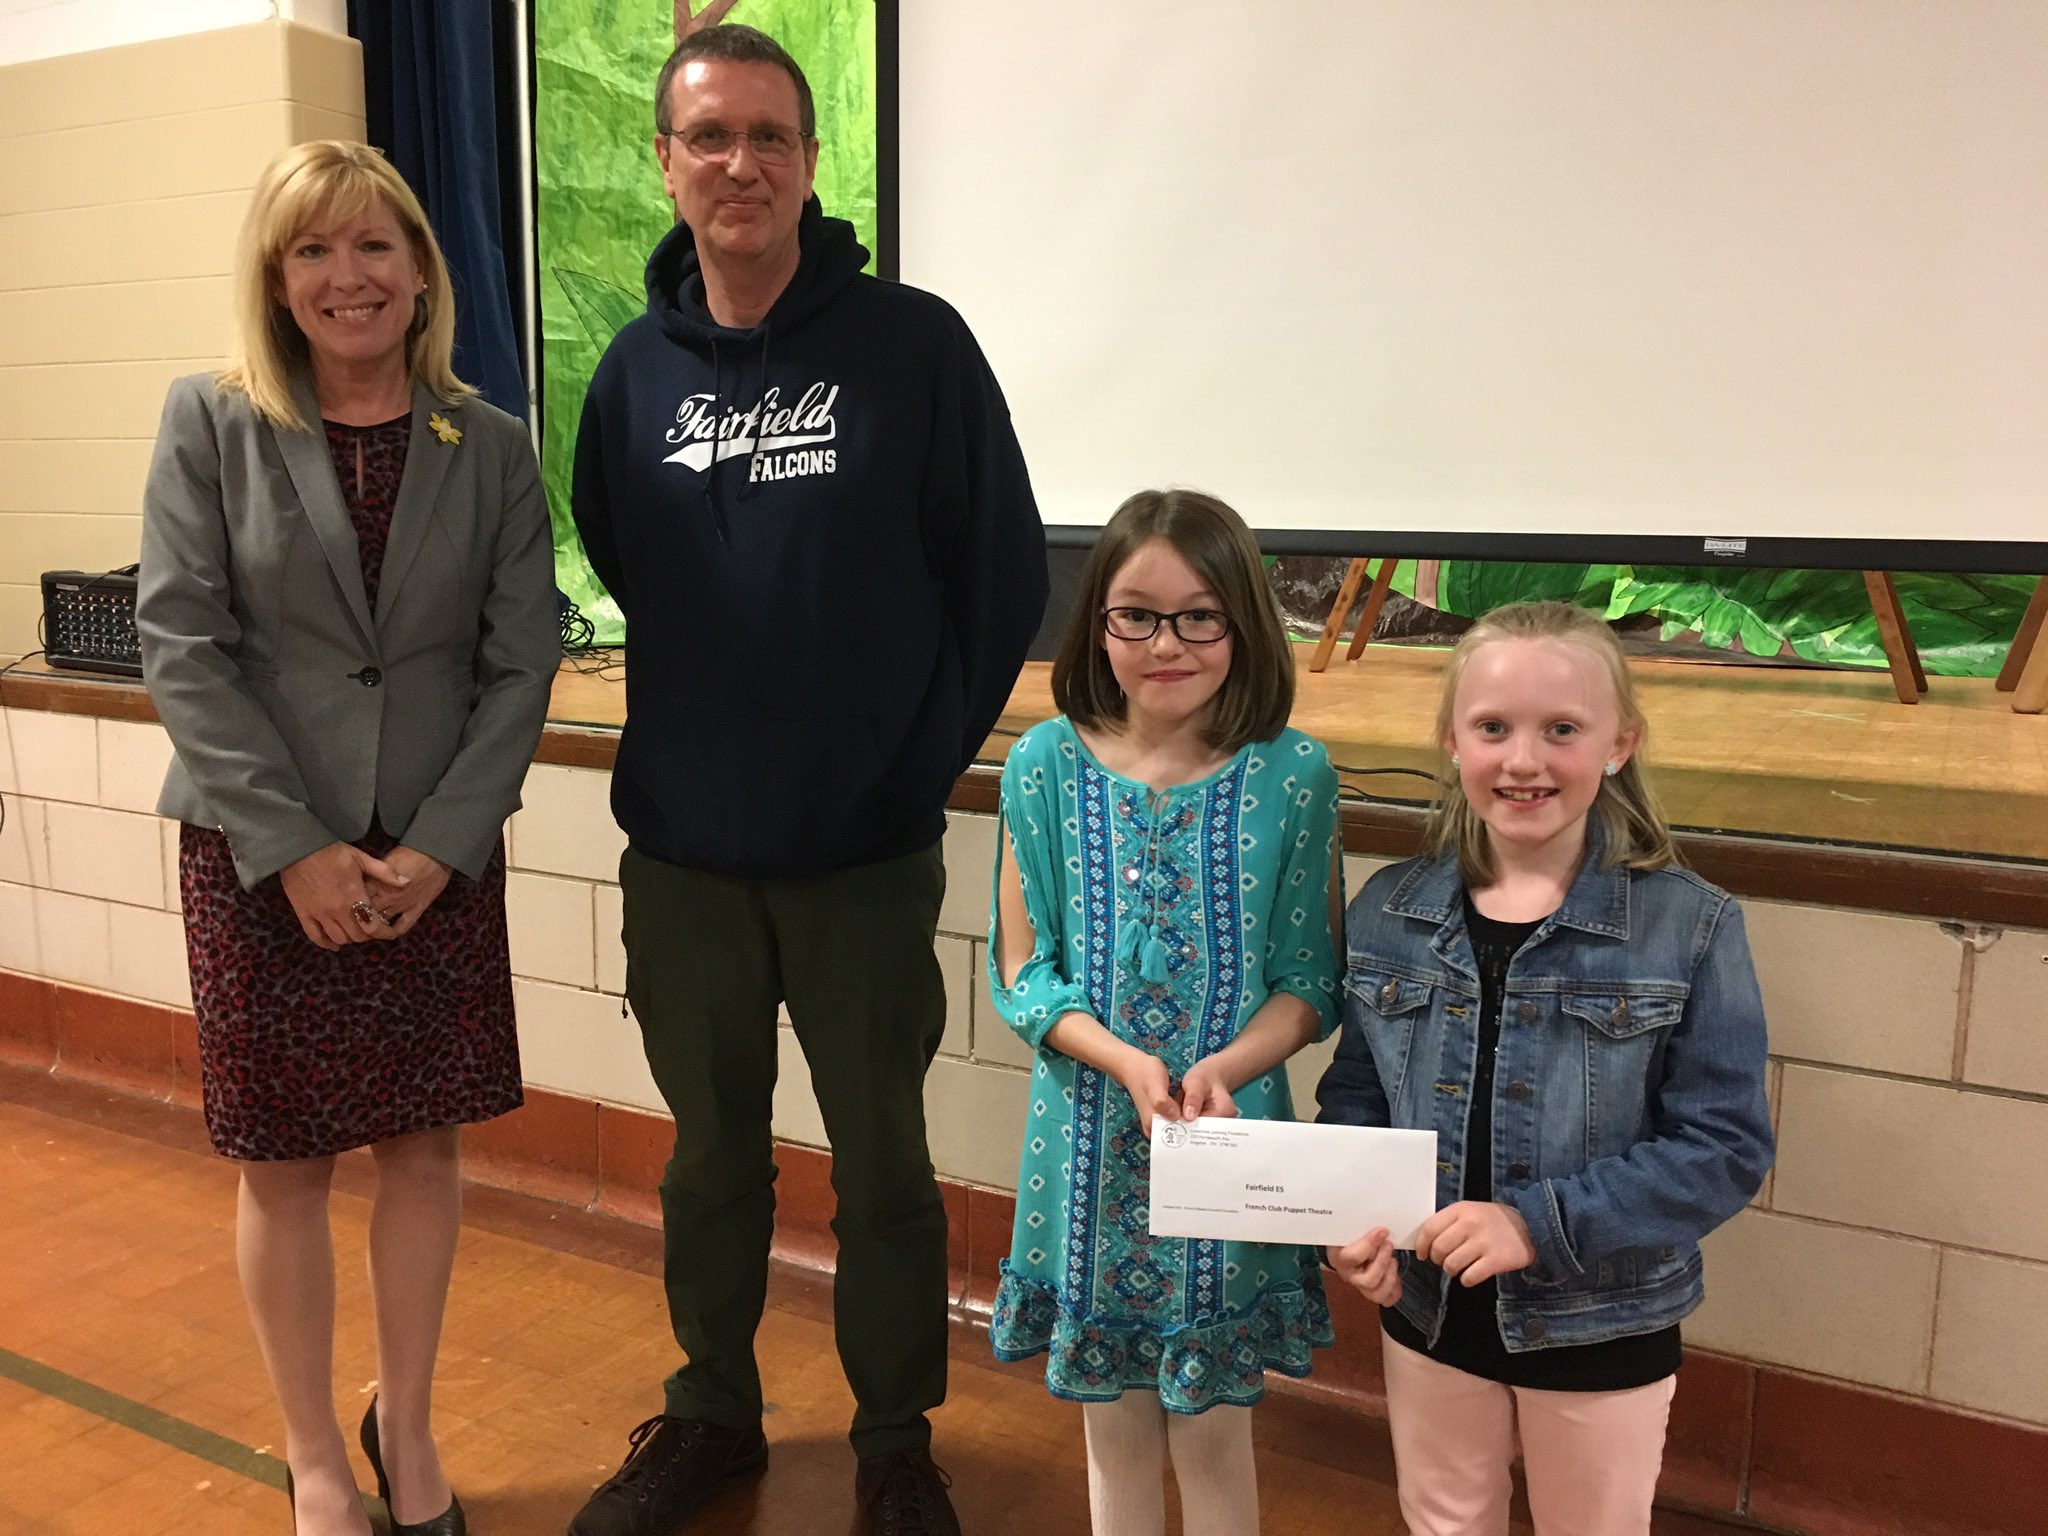 Meet Abby & Courntey from @FESFalcons_LDSB Oh & @DebraRantz & Mr. Wenkoff. Grant will support puppet theatre for Fr. club that Ss organized. https://t.co/gBAieUhYep